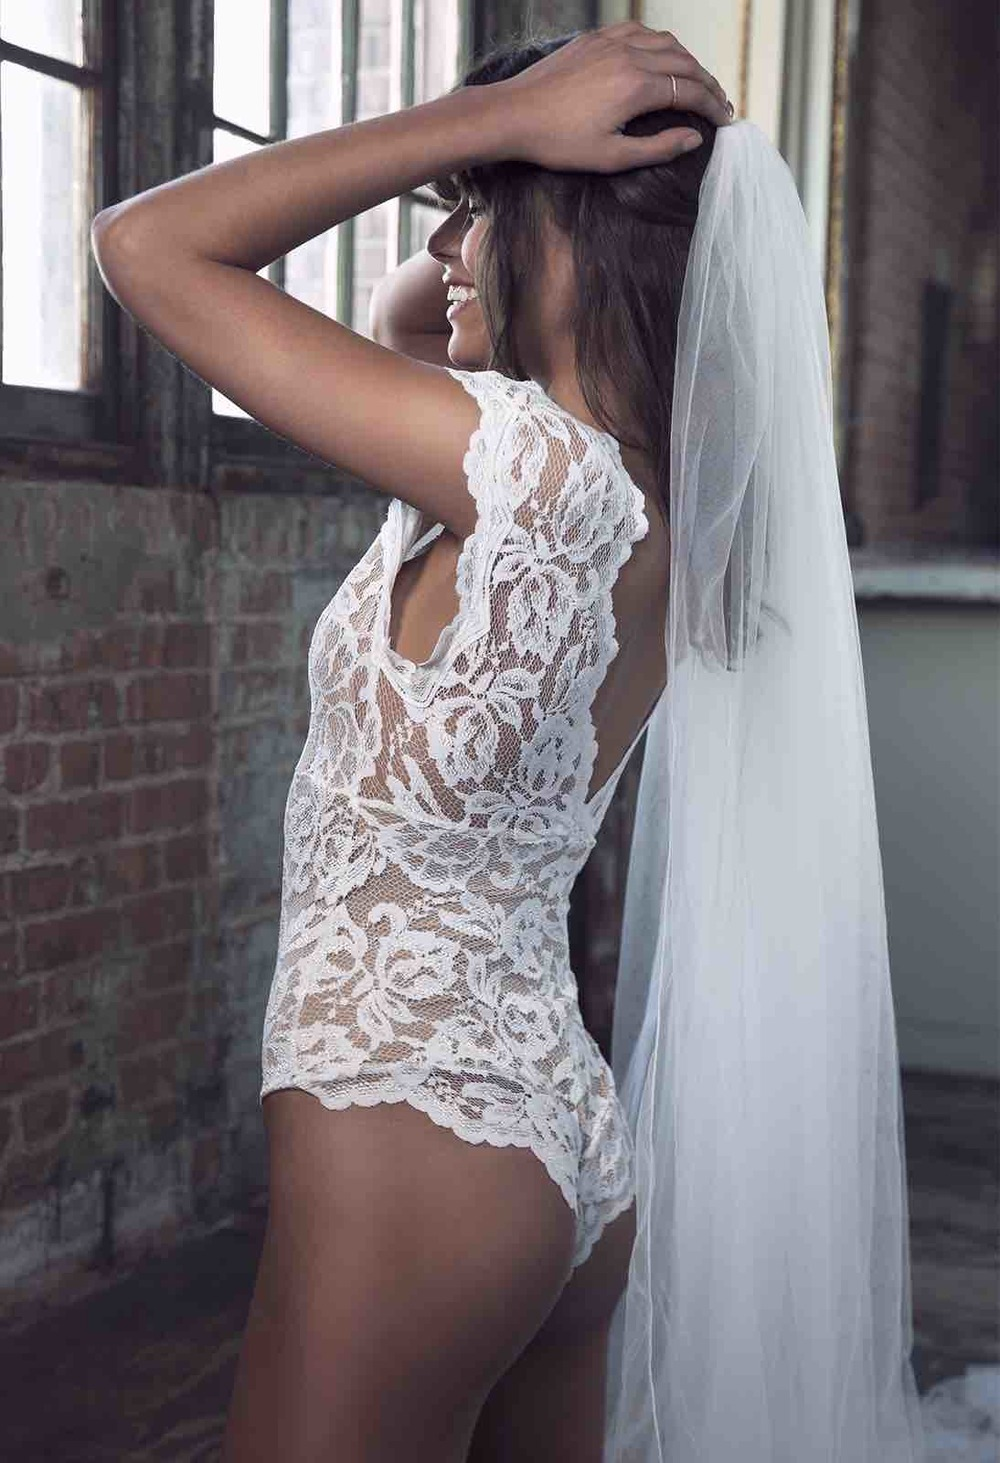 Gigi Body Suit Back View - Blanc Collection from Grace Loves Lace.jpg